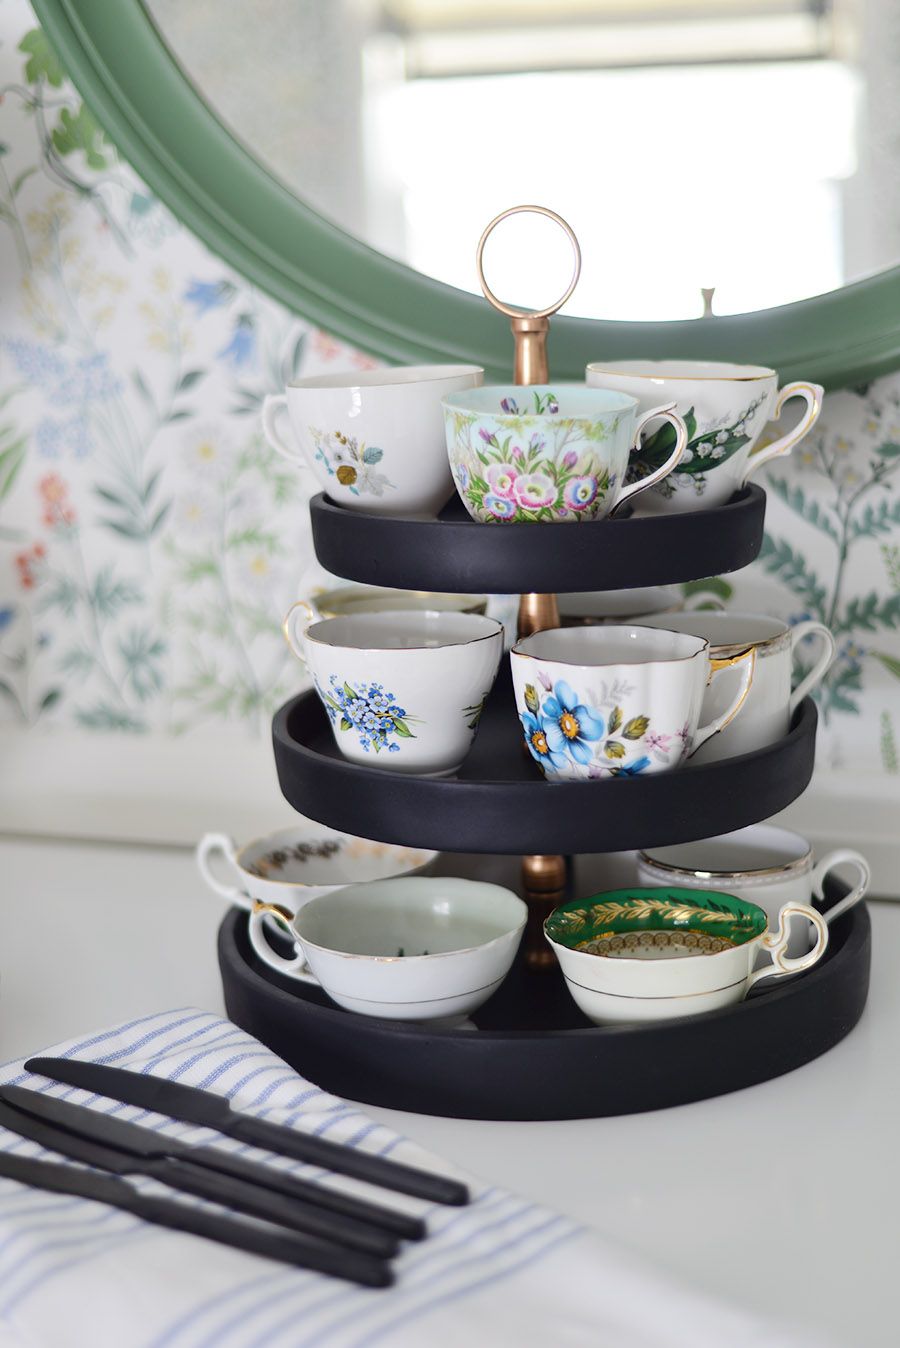 spring decorations for the home, Borastapeter flora white wallpaper, green round mirror, buffet display, teacups on tiered tray